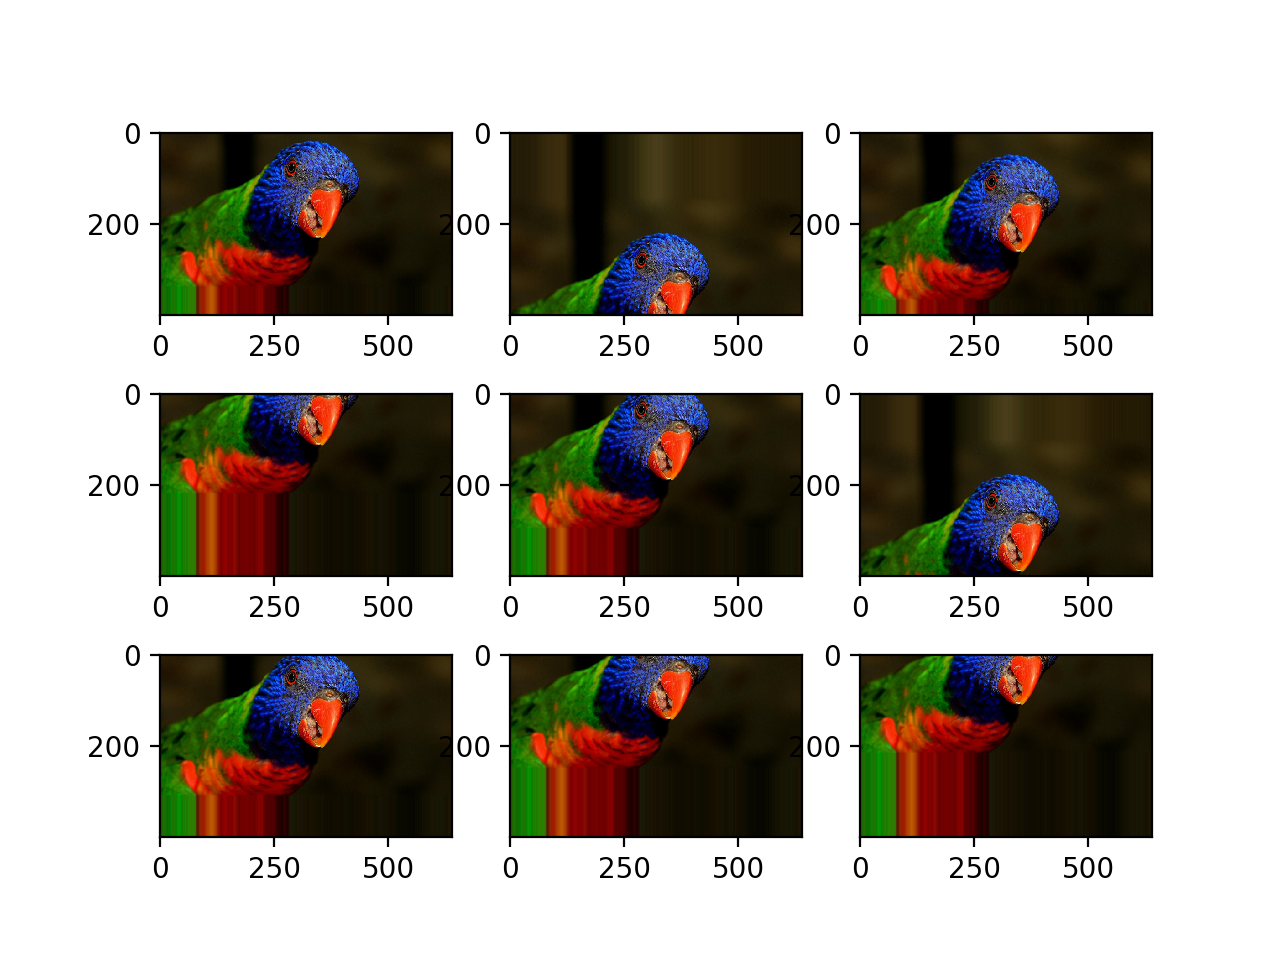 Plot of Augmented Images With a Random Vertical Shift